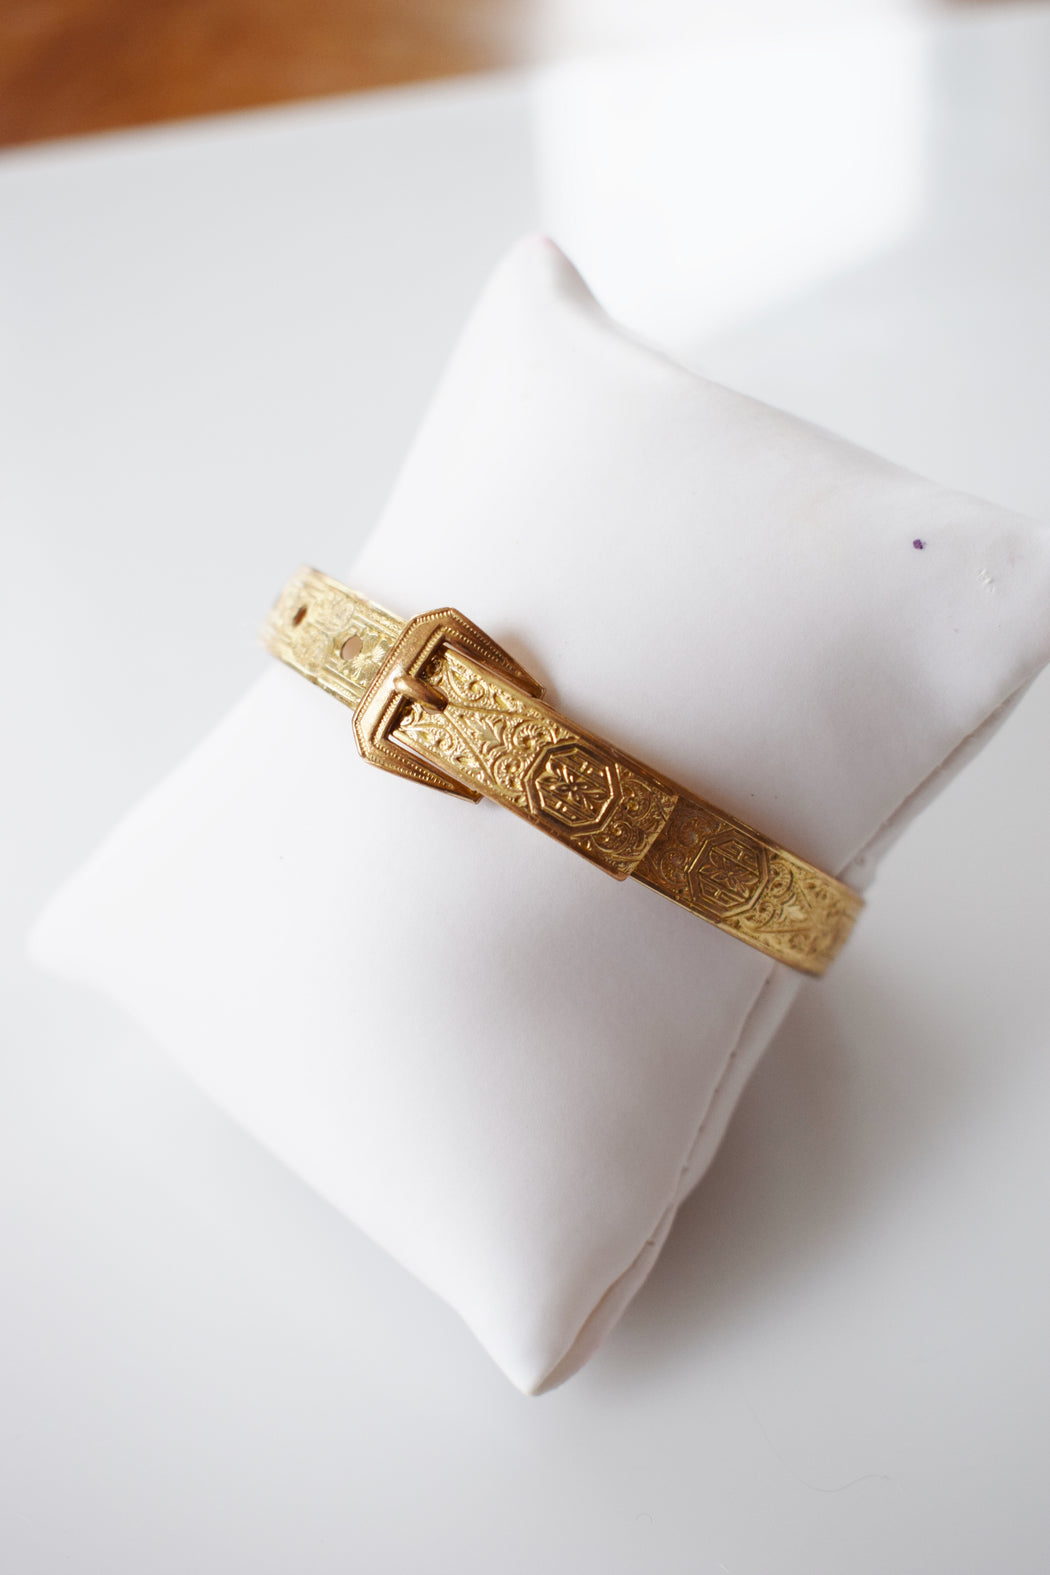 Victorian Revival Gold Buckle Bangle Bracelet